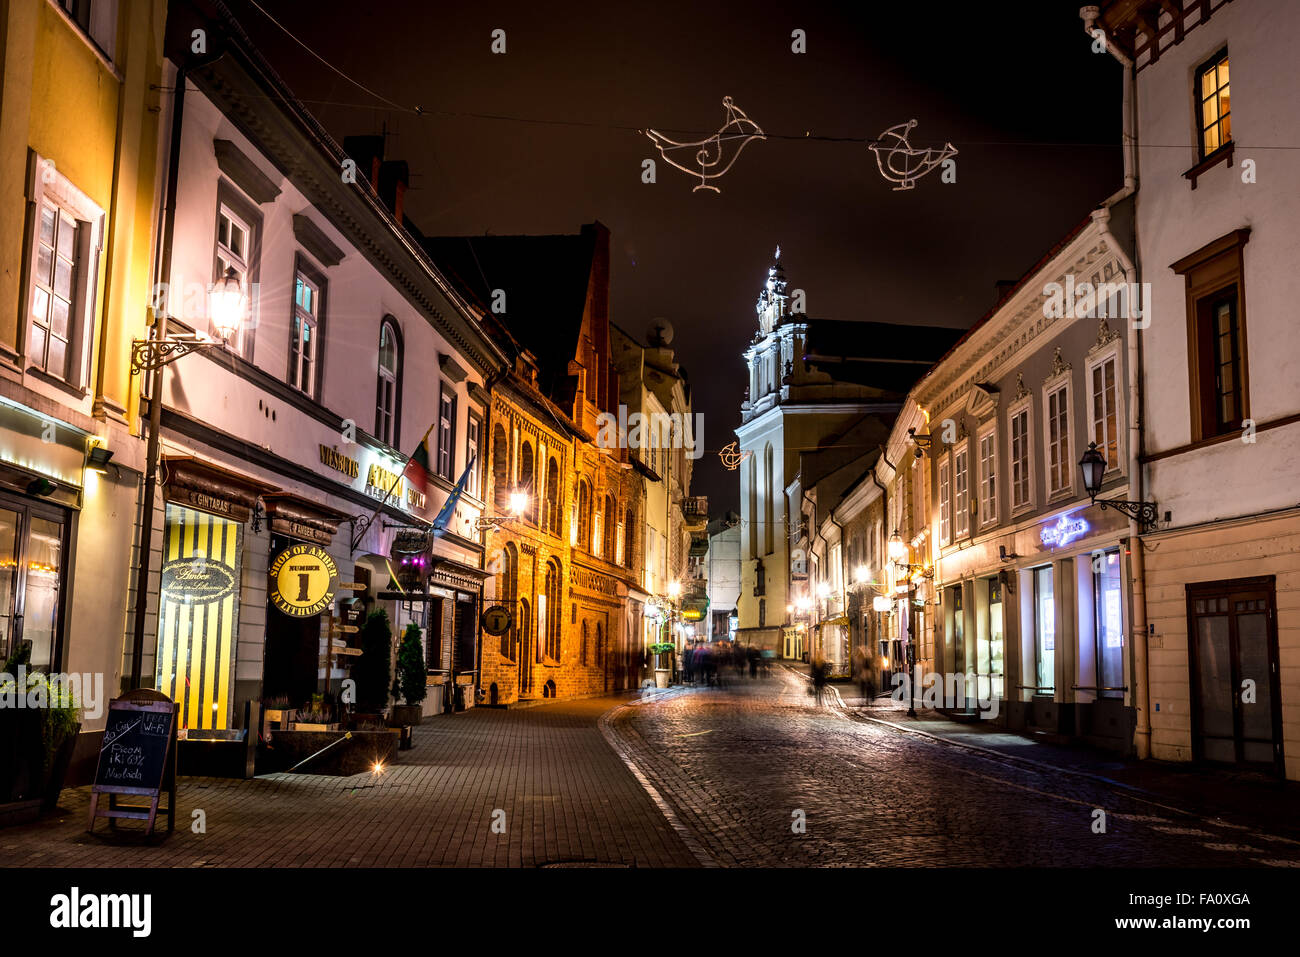 Night Street in Vilnius, Lithuania - Stock Image